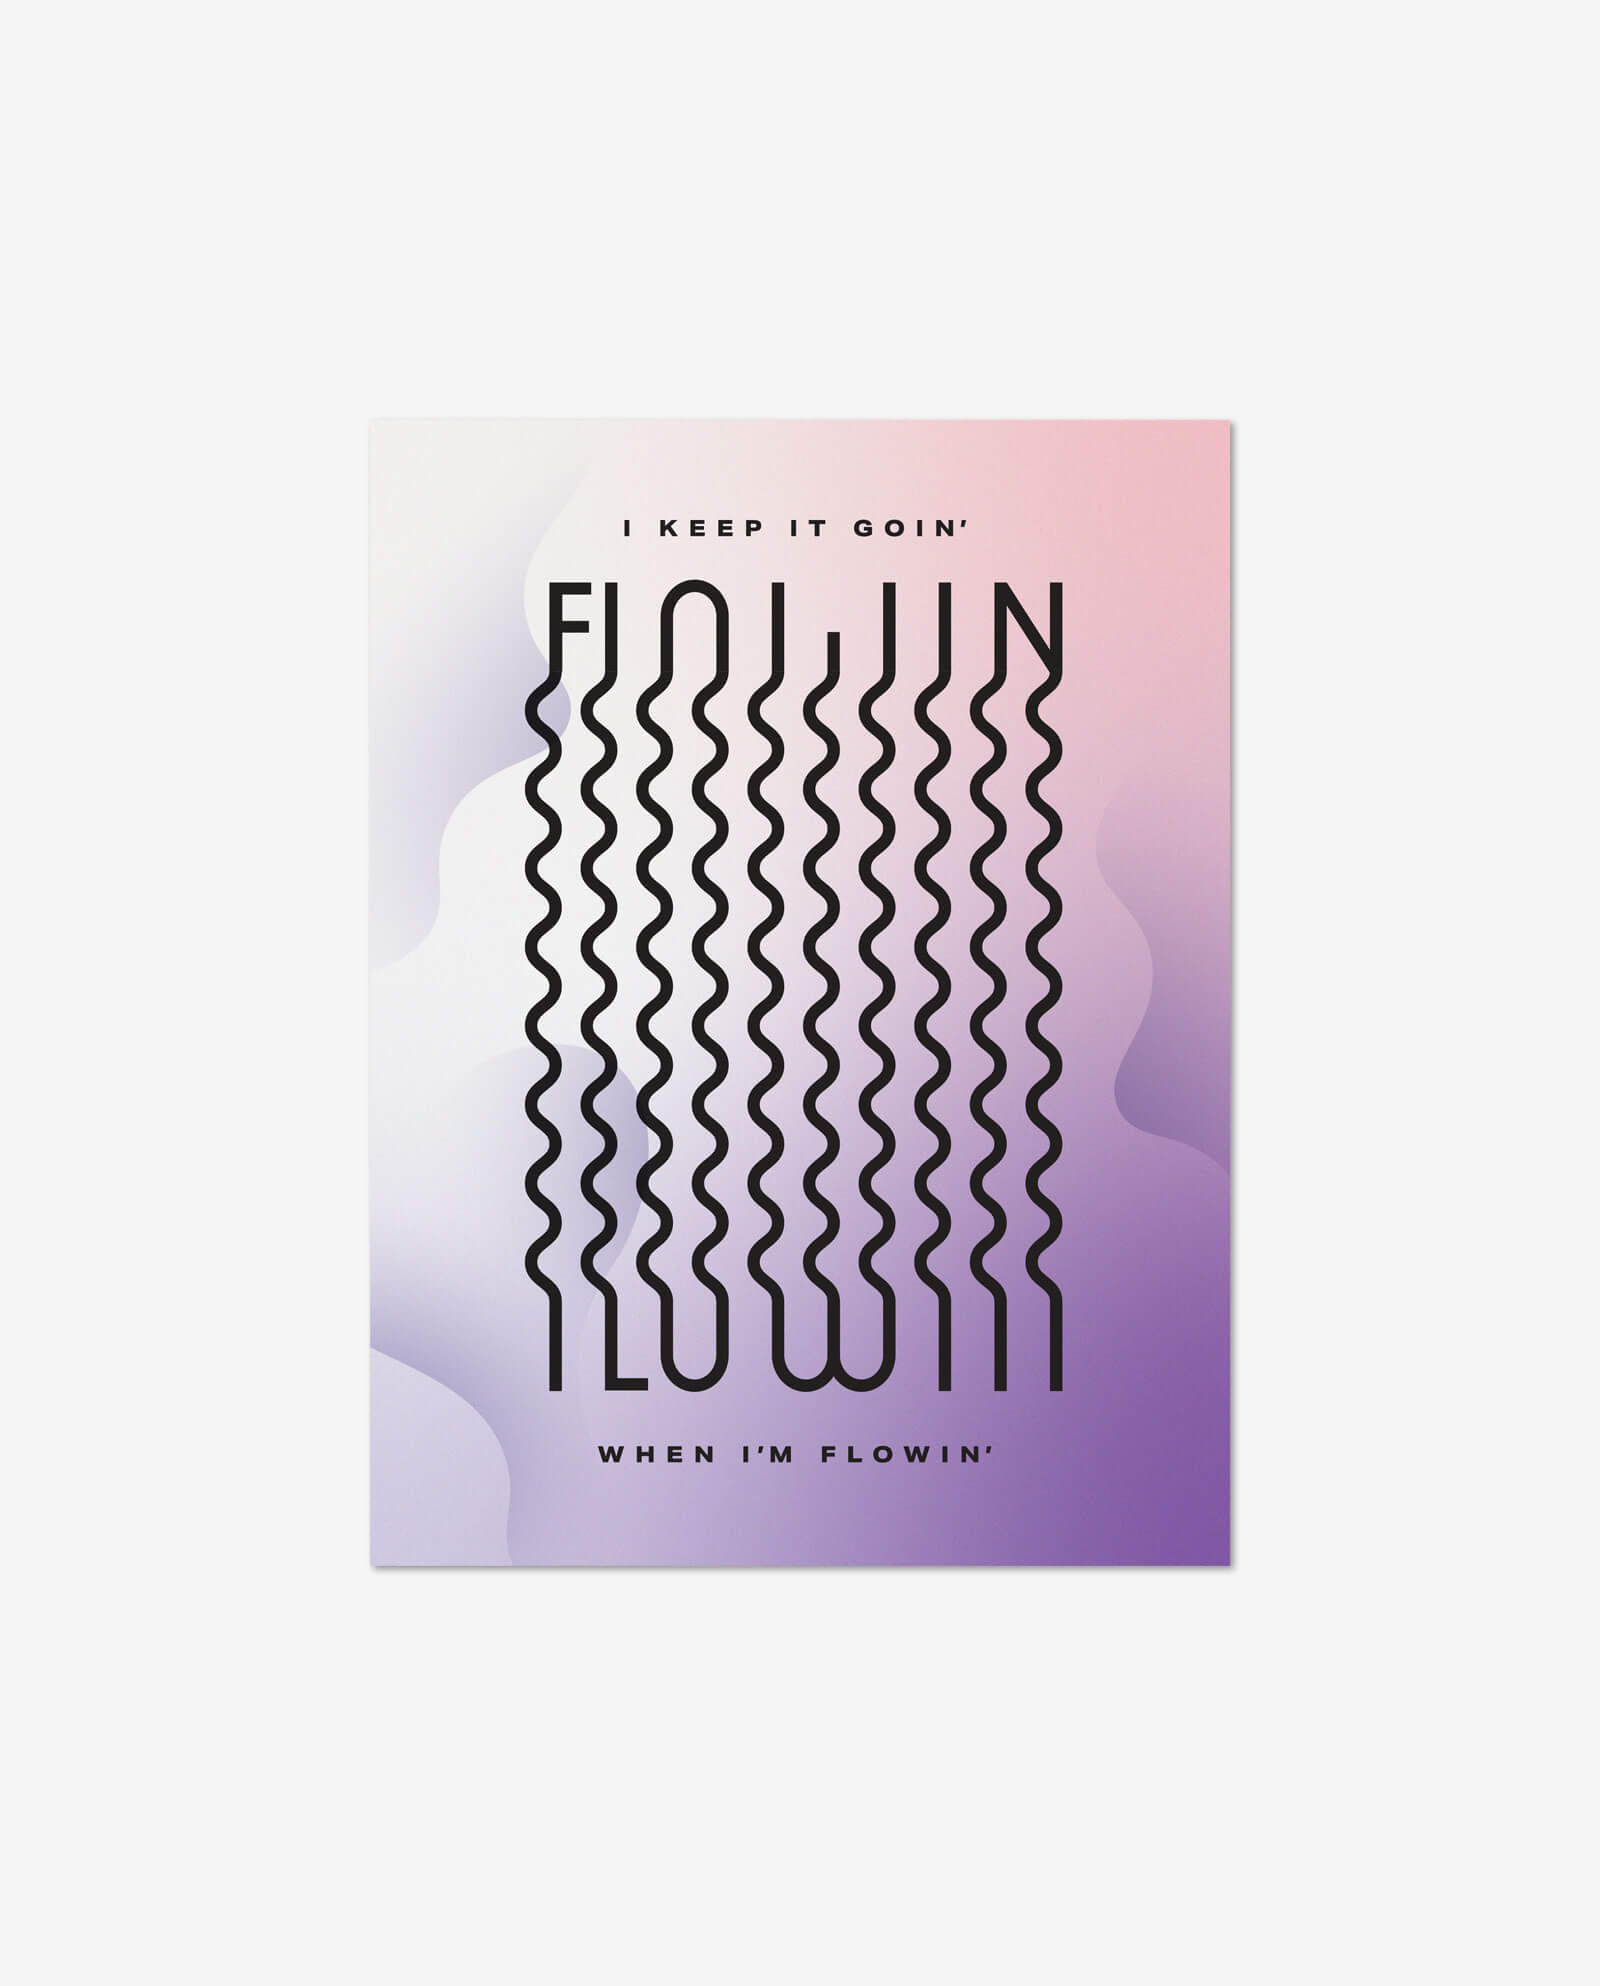 """A purple and salmon poster with small type saying """"I keep it goin'"""" at the top, wavy typography in the middle saying """"FLOWIN',"""" and small type """"When I'm Flowin'"""" at the bottom with an atmospheric background."""